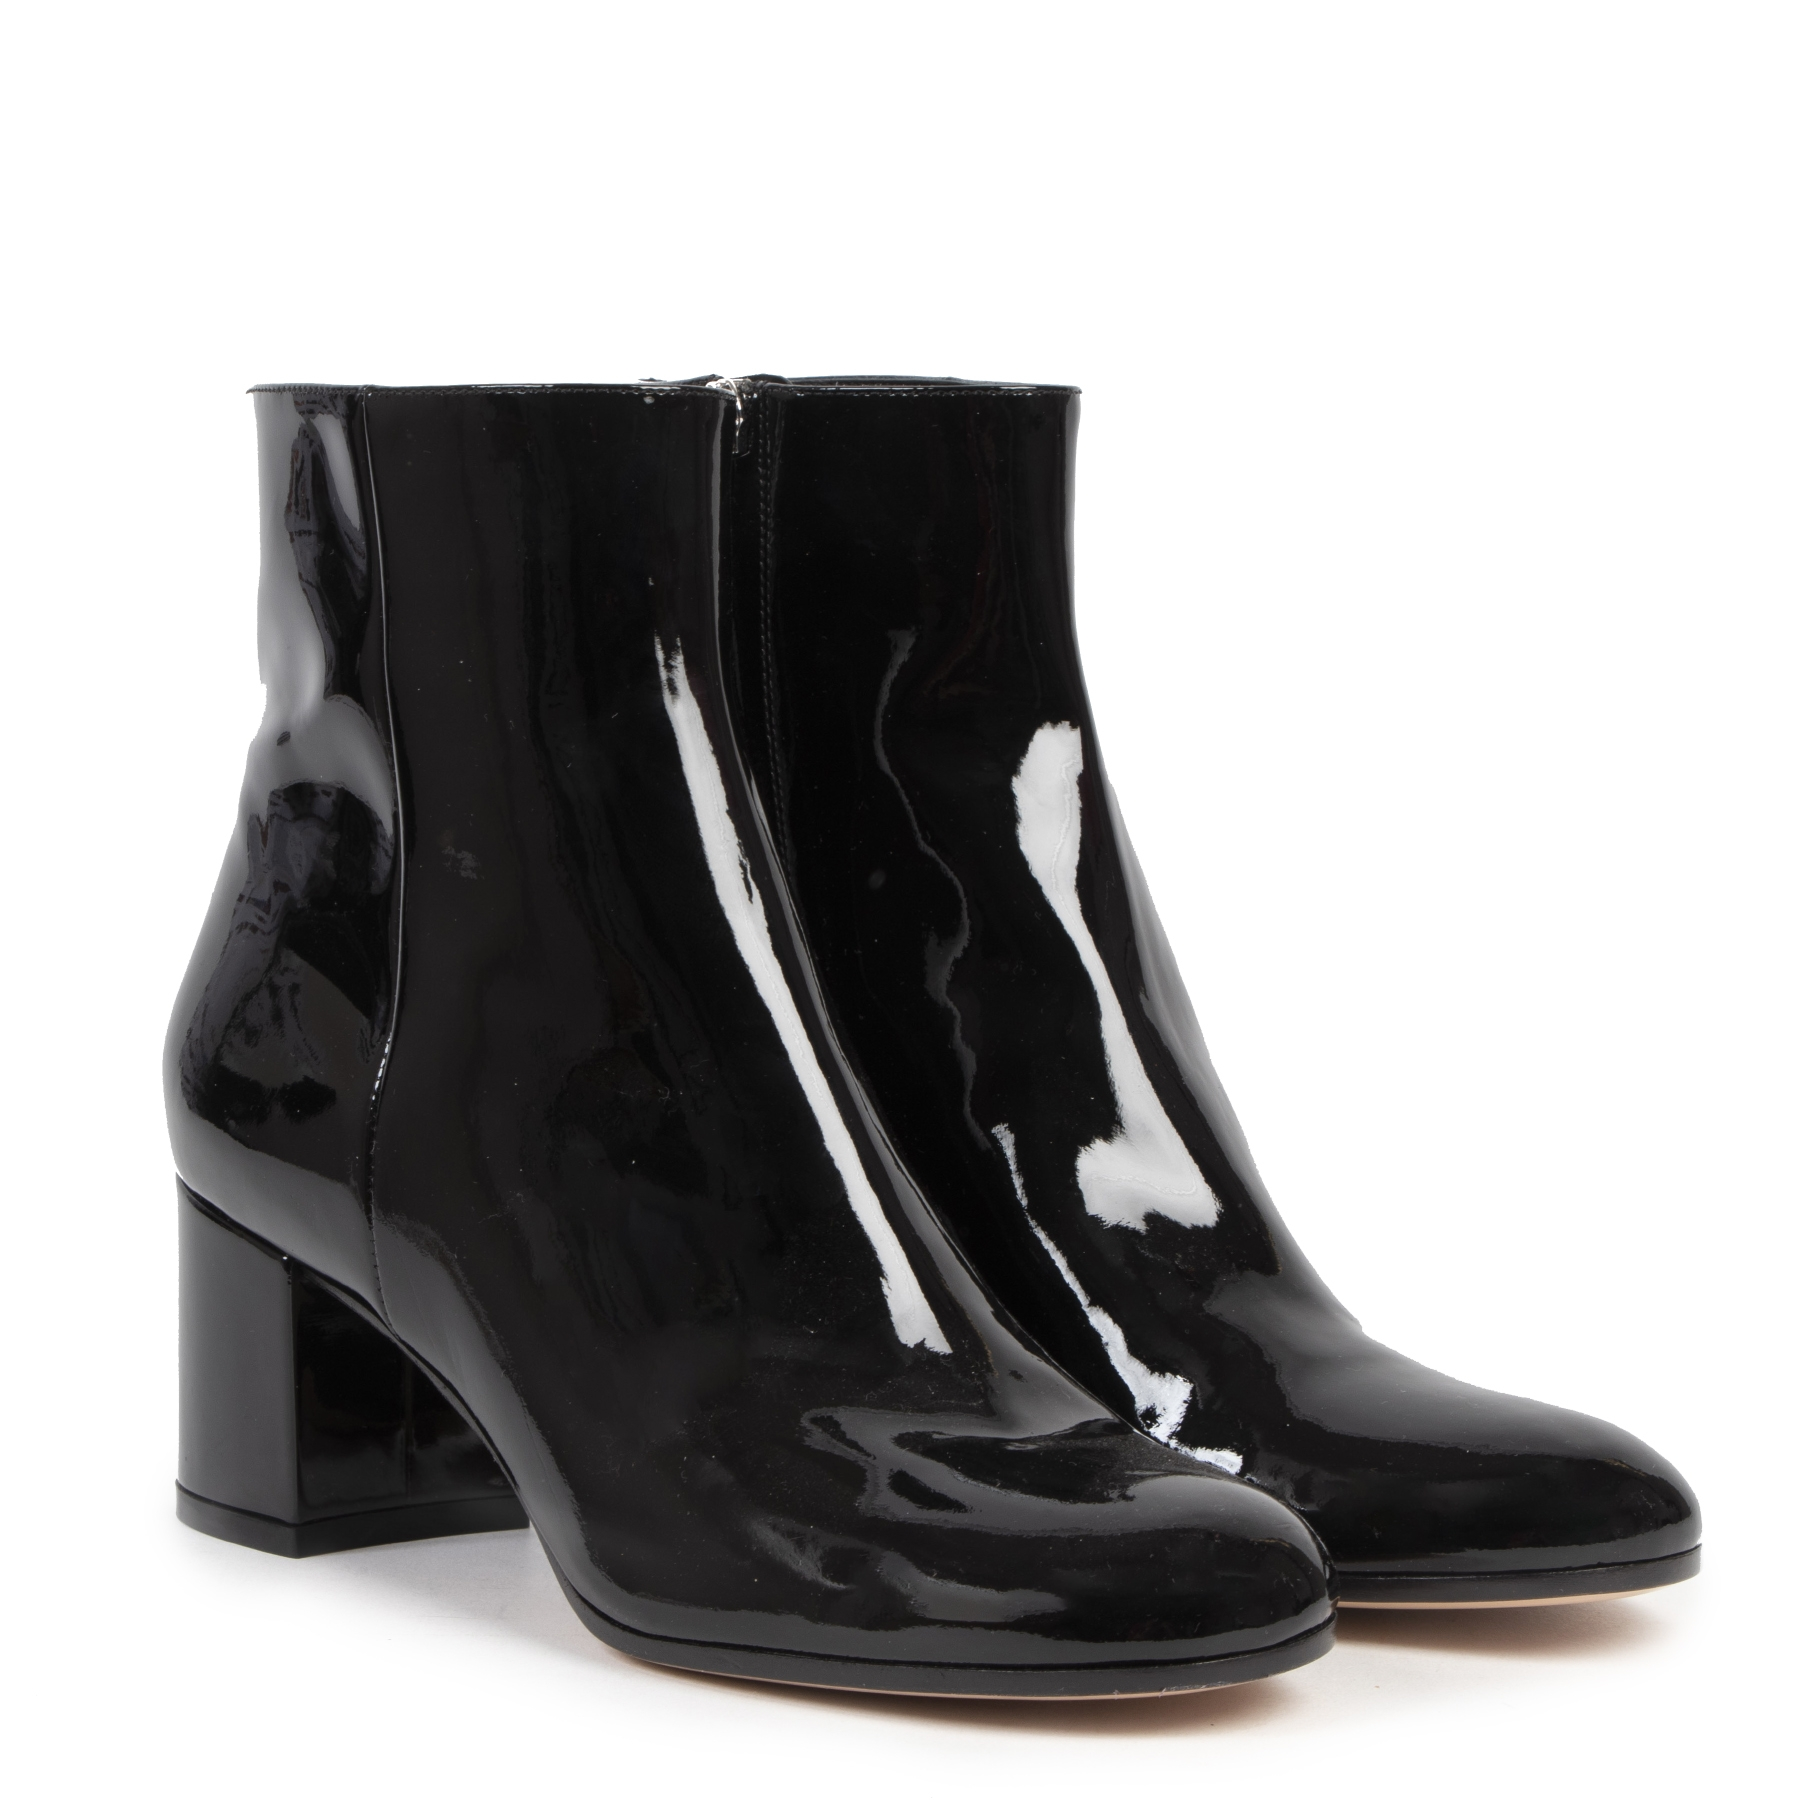 Gianvito Rossi Black Patent Leather Ankle Boots - Size 39,5